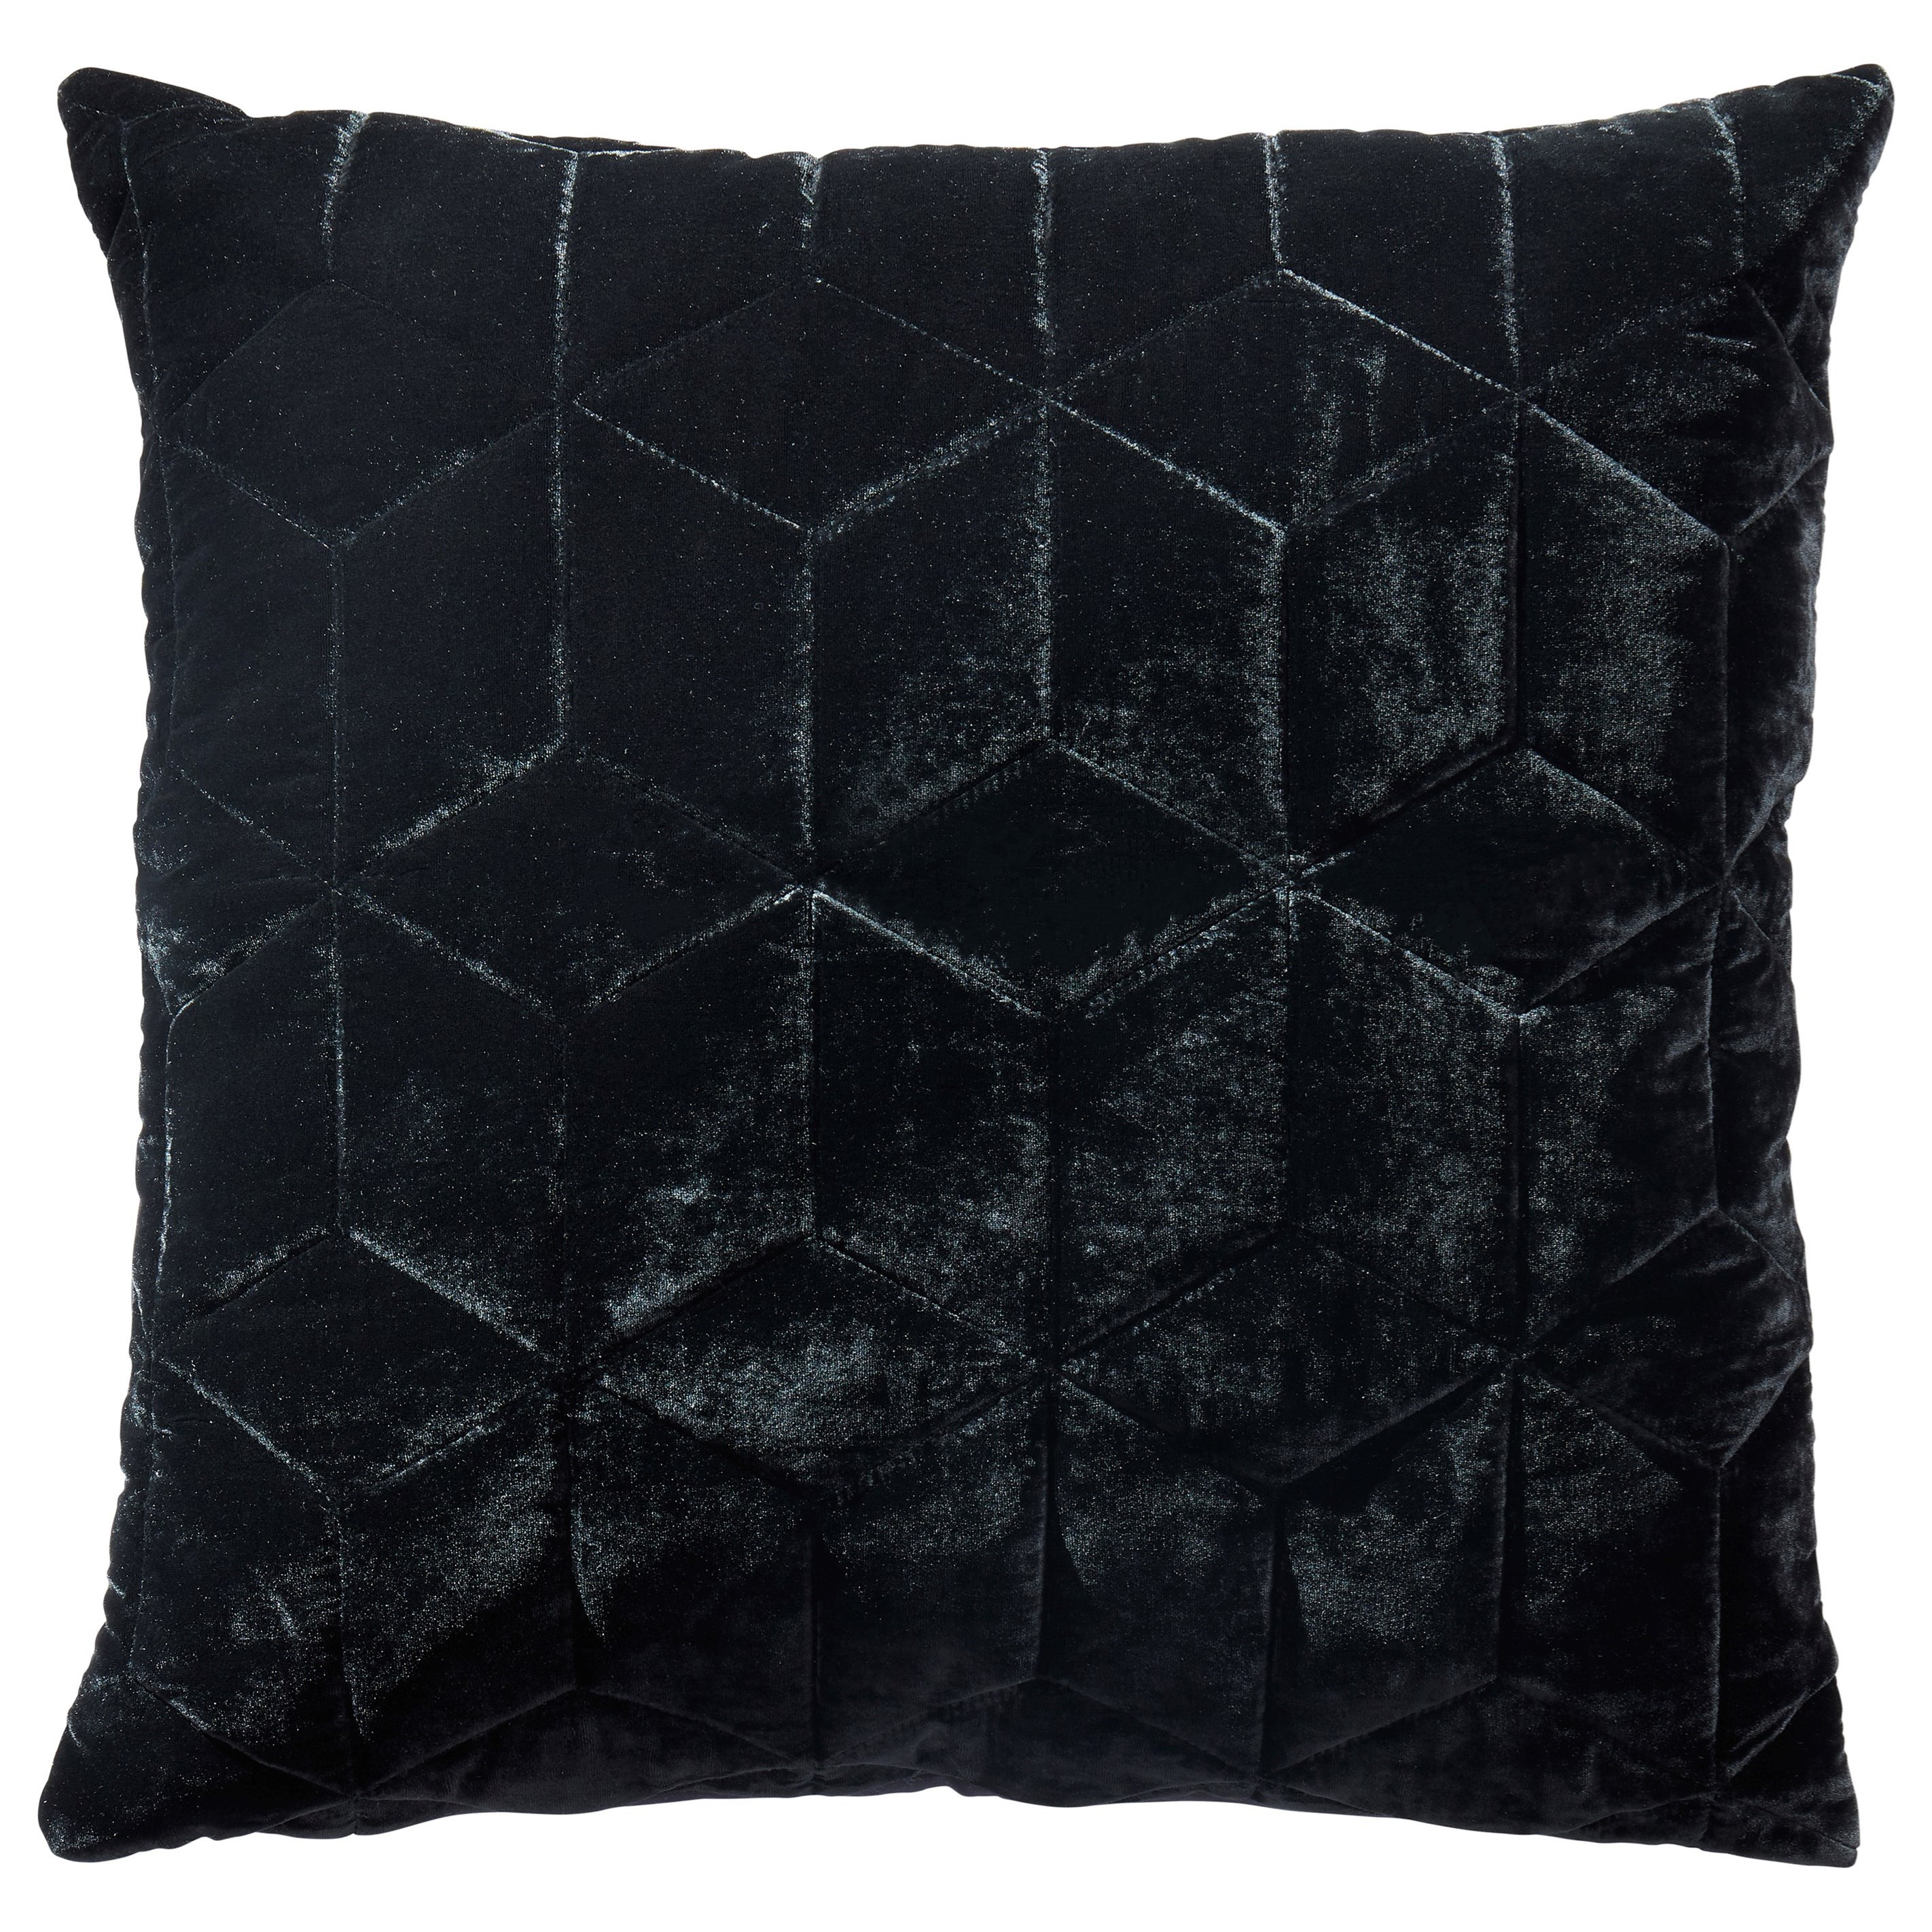 Pillows Darleigh Black Pillow by Ashley (Signature Design) at Johnny Janosik